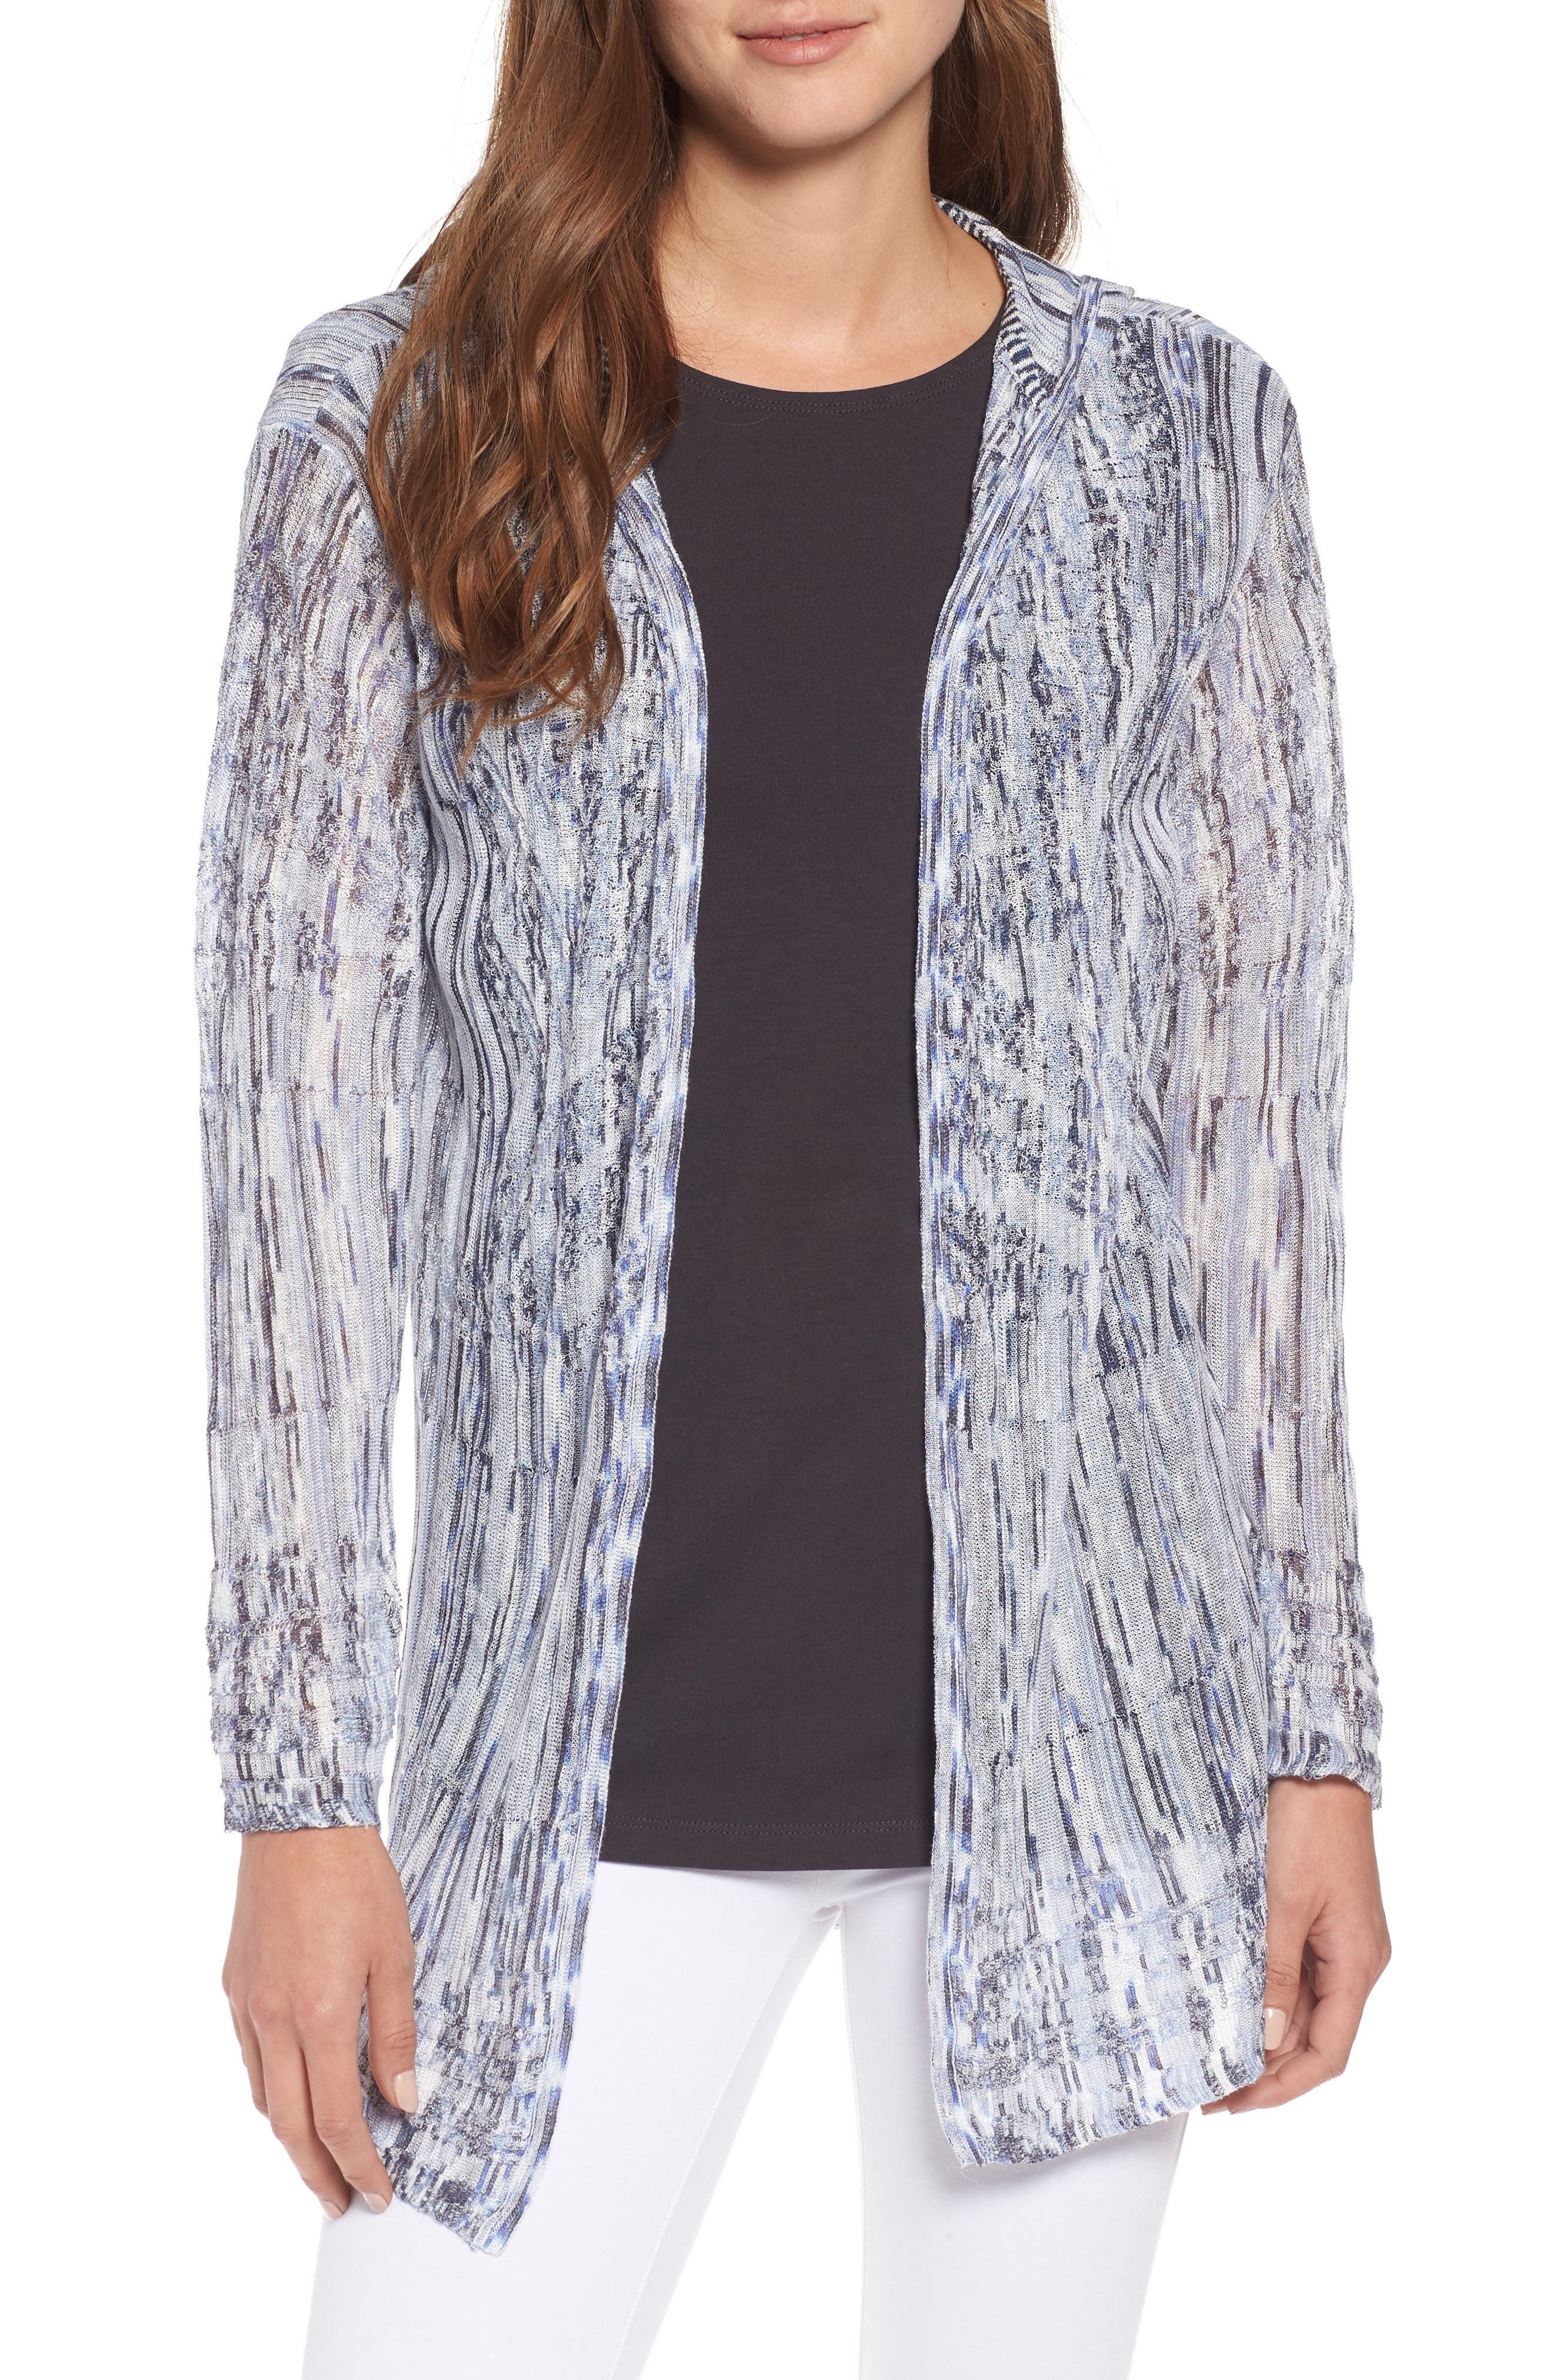 New Frontier Hooded Cardigan,                         Main,                         color, Multi